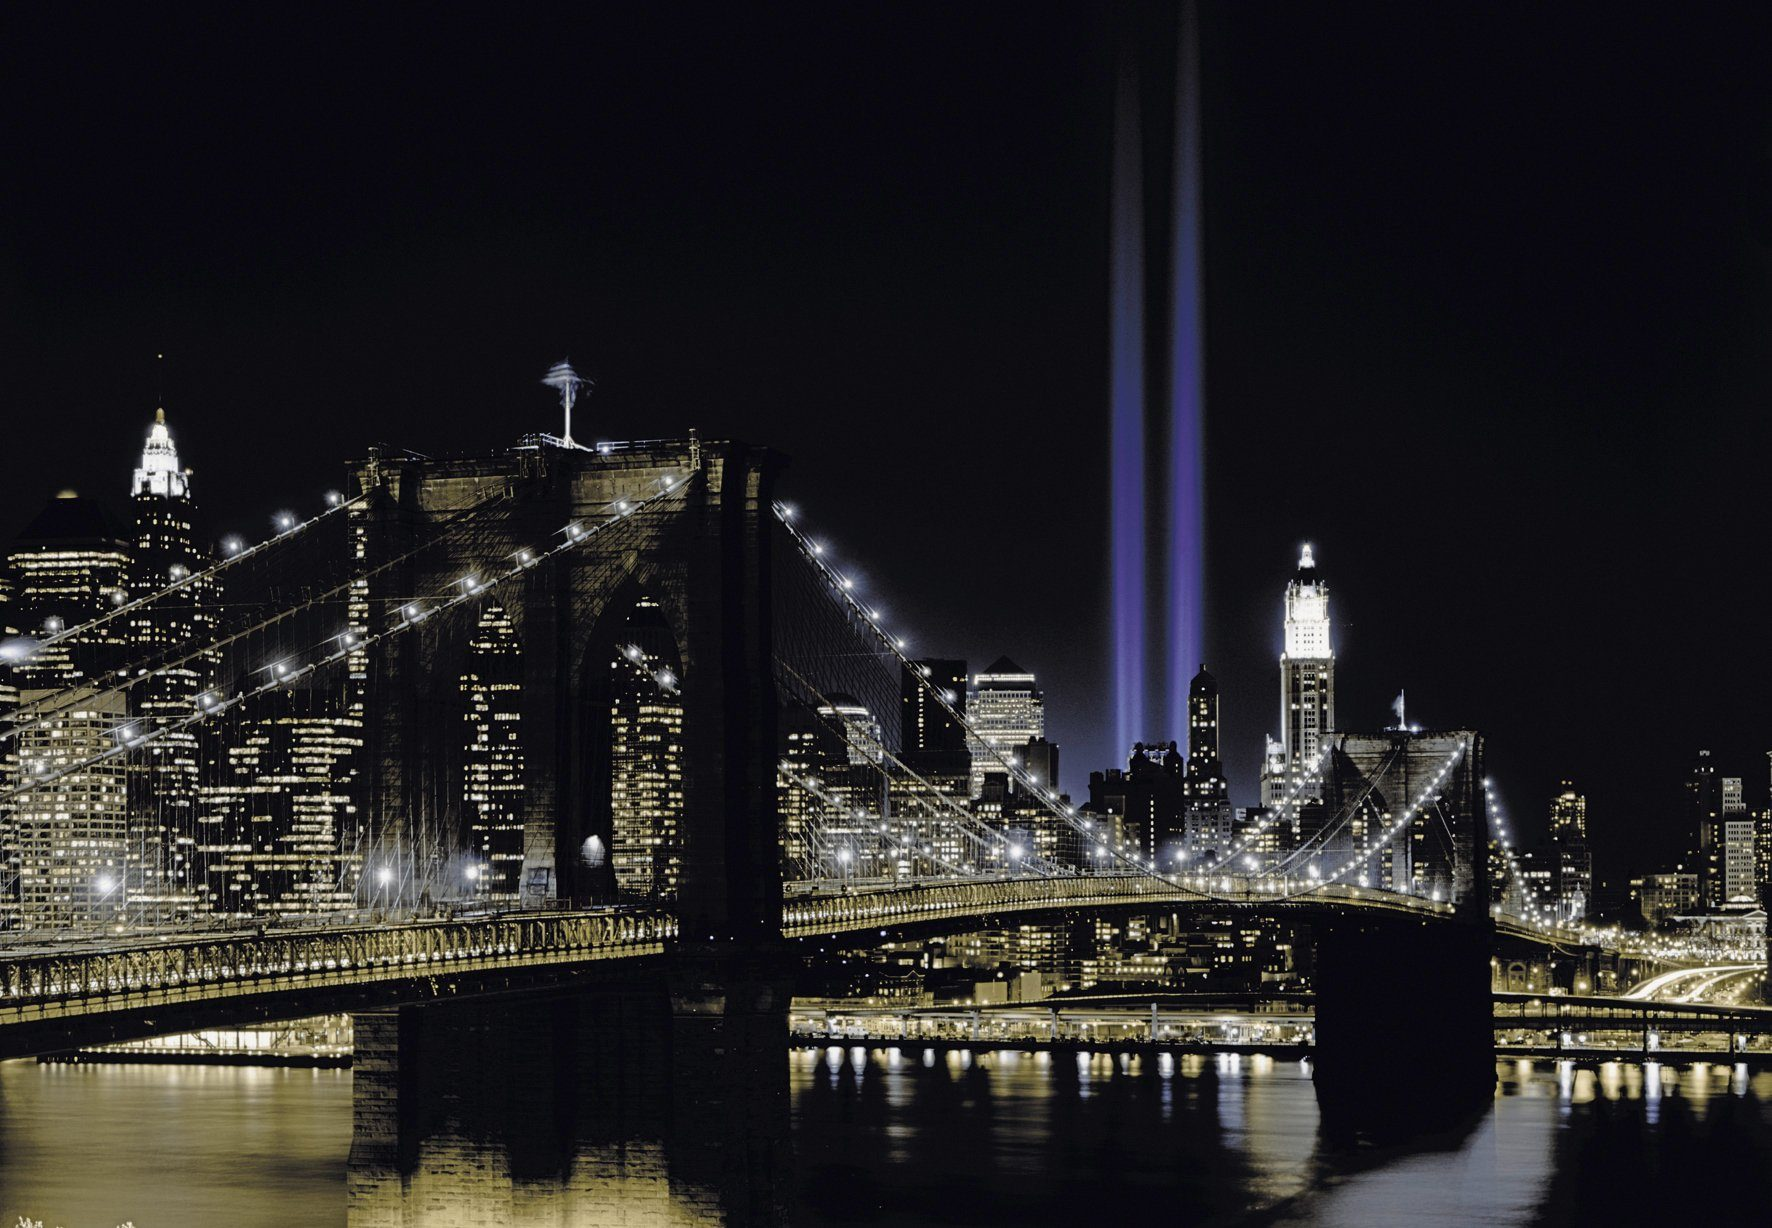 PAPERMOON Fototapete »New York by night«, Vlies, 7 Bahnen, 350 x 260 cm